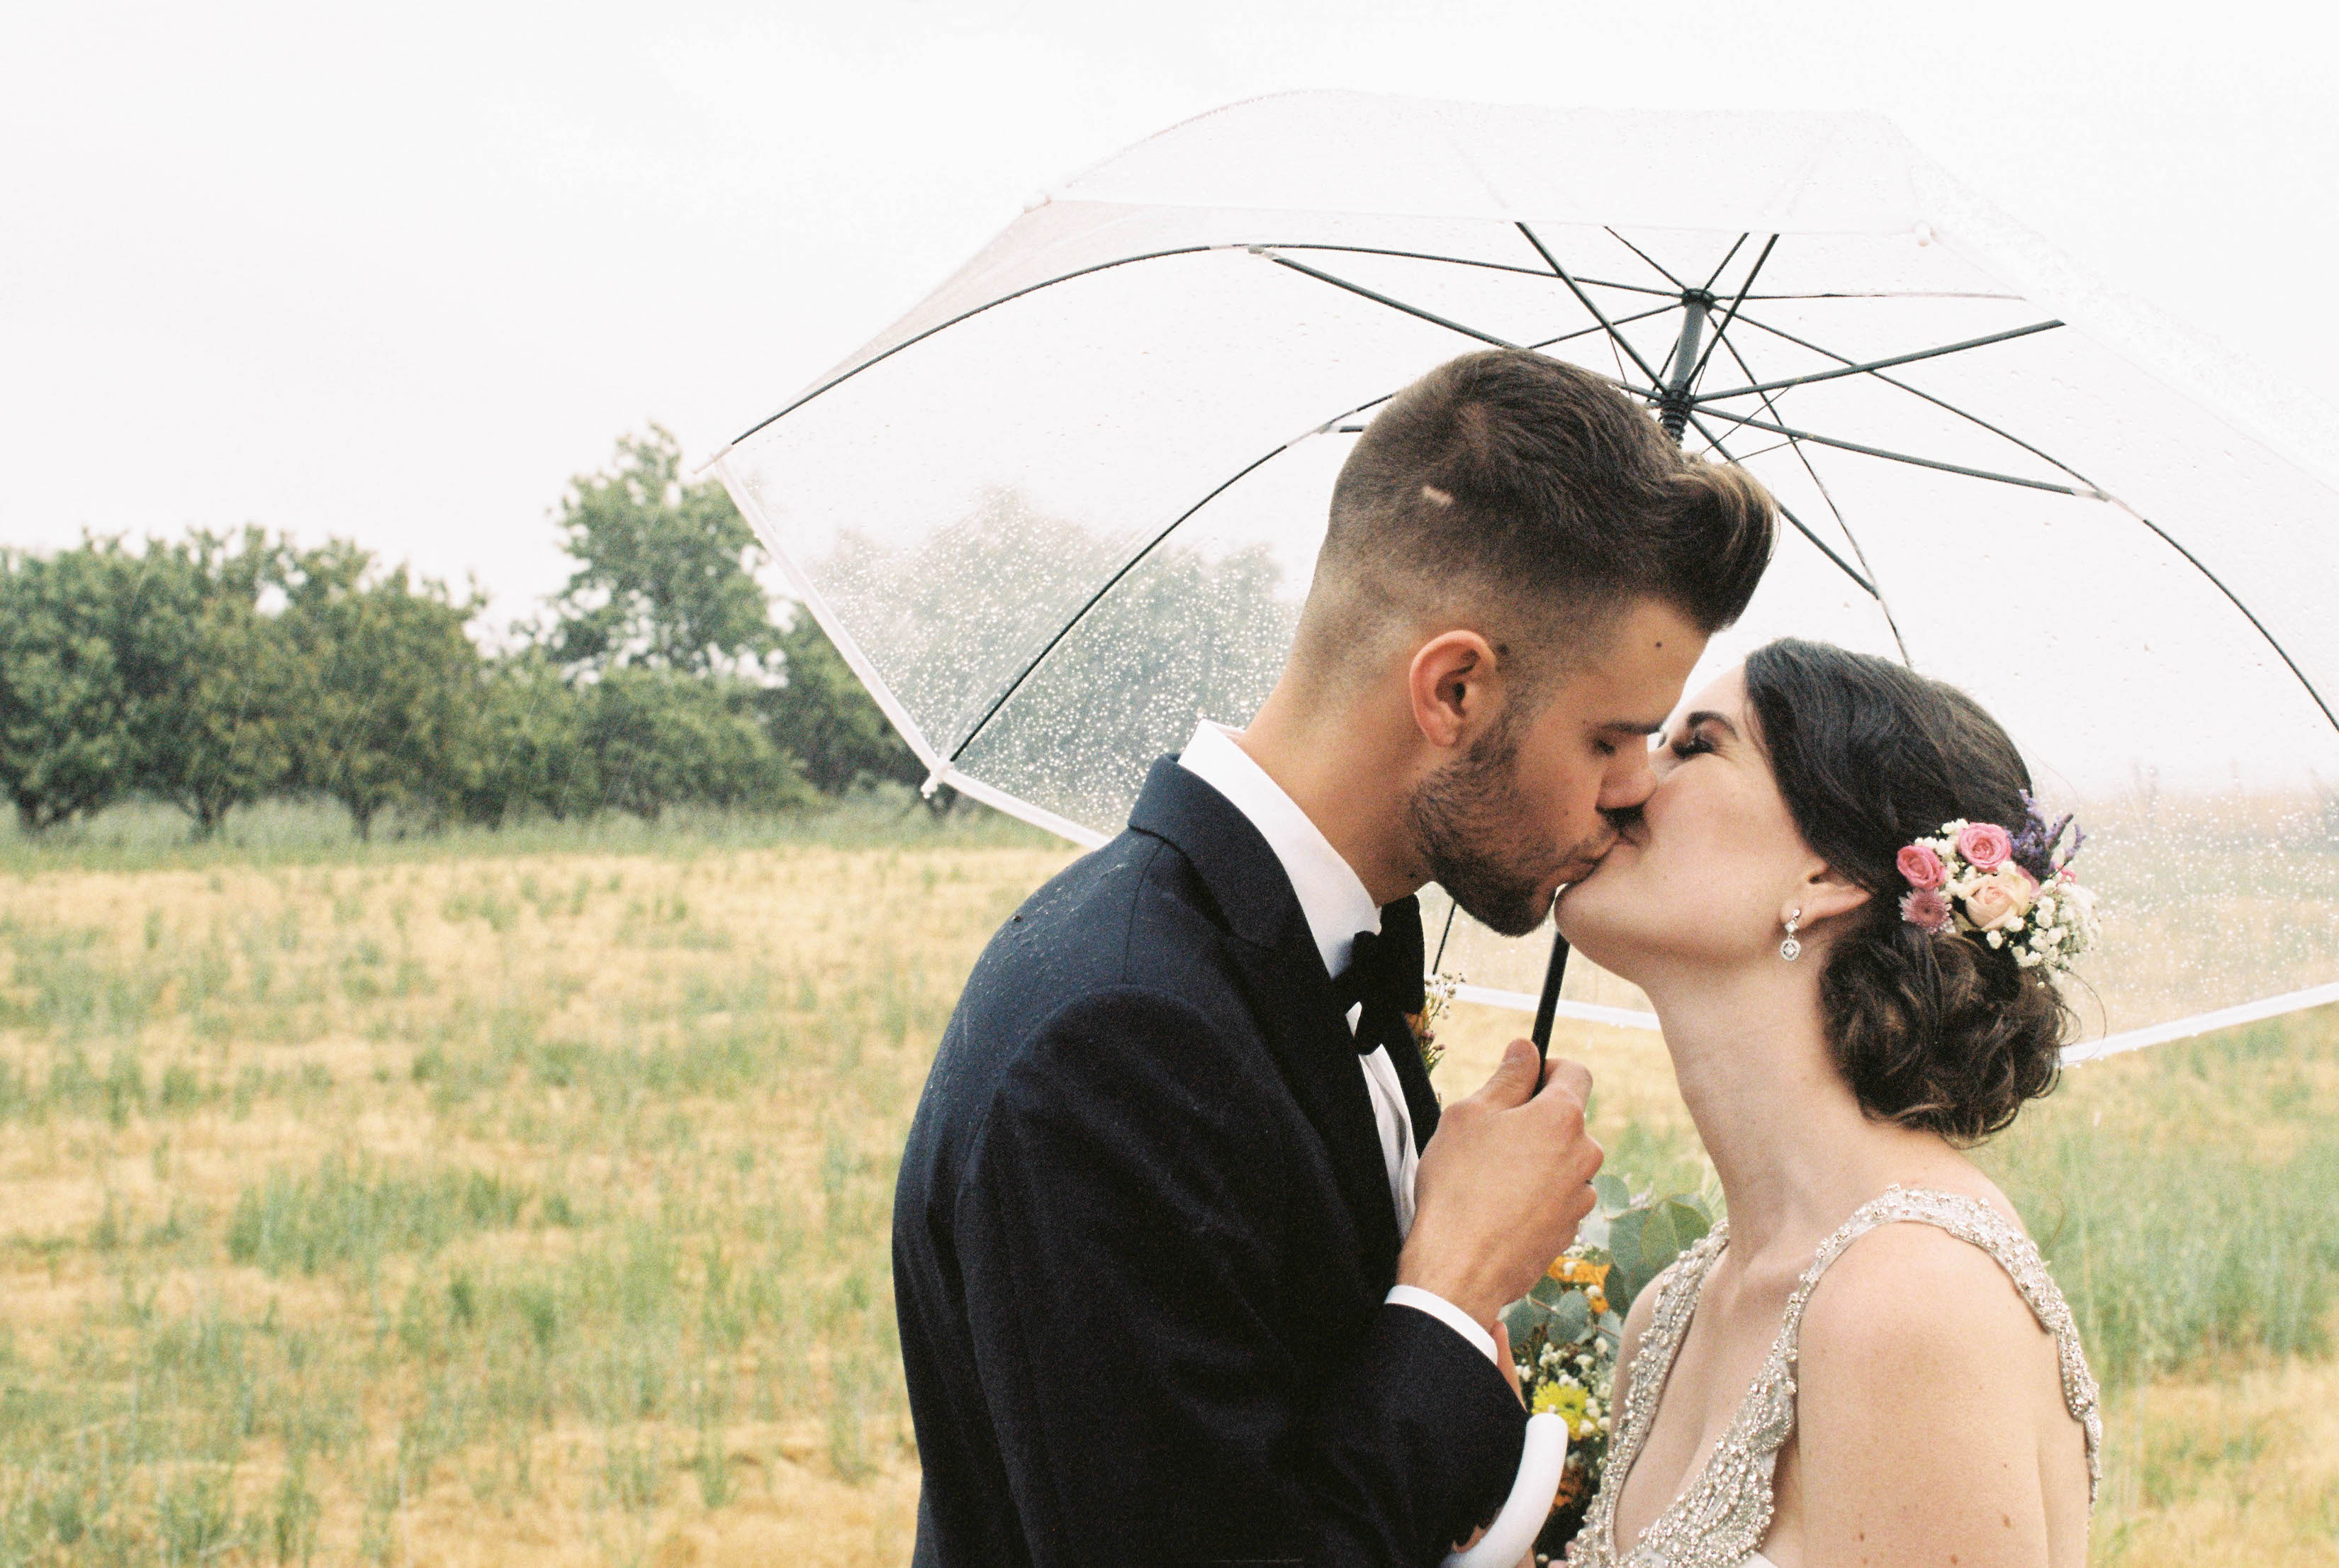 Authentic Wedding Photography of the Bride & Groom kissing on their wedding day